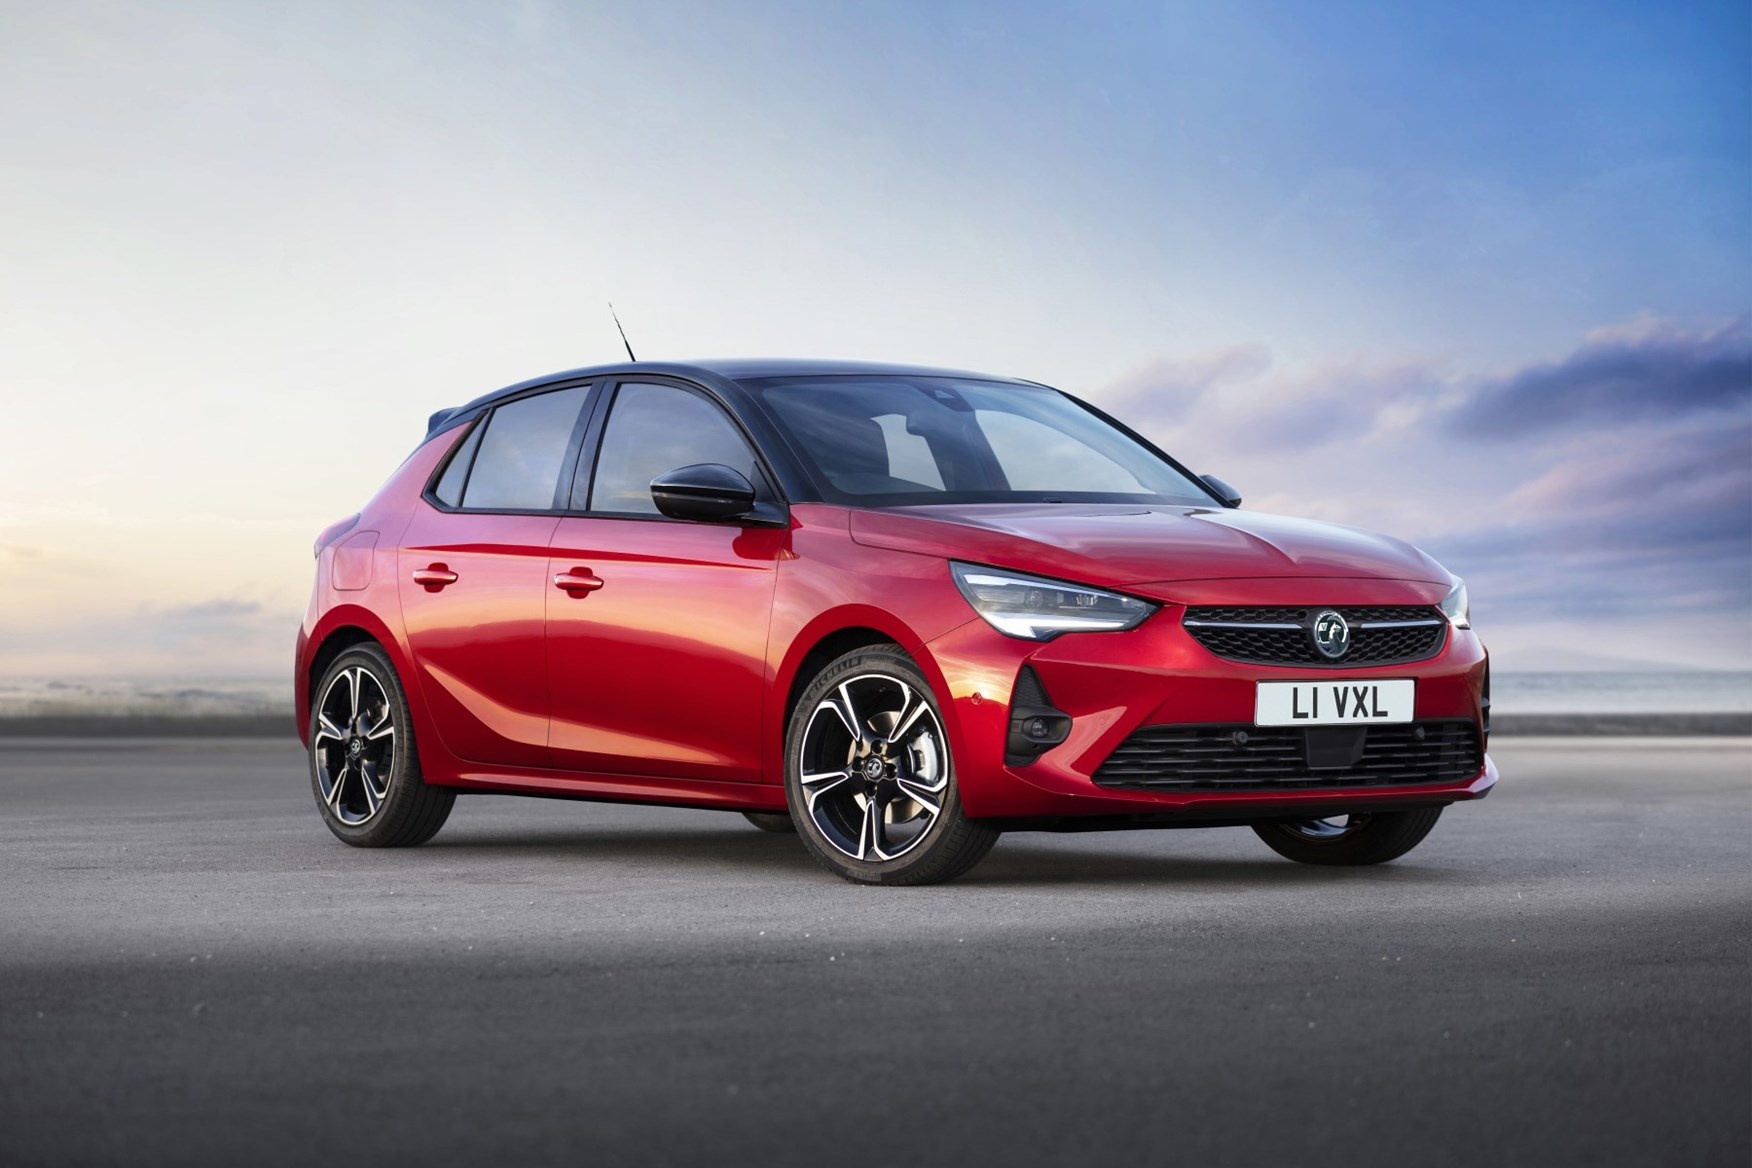 Vauxhall Corsa Review (2020) | Parkers